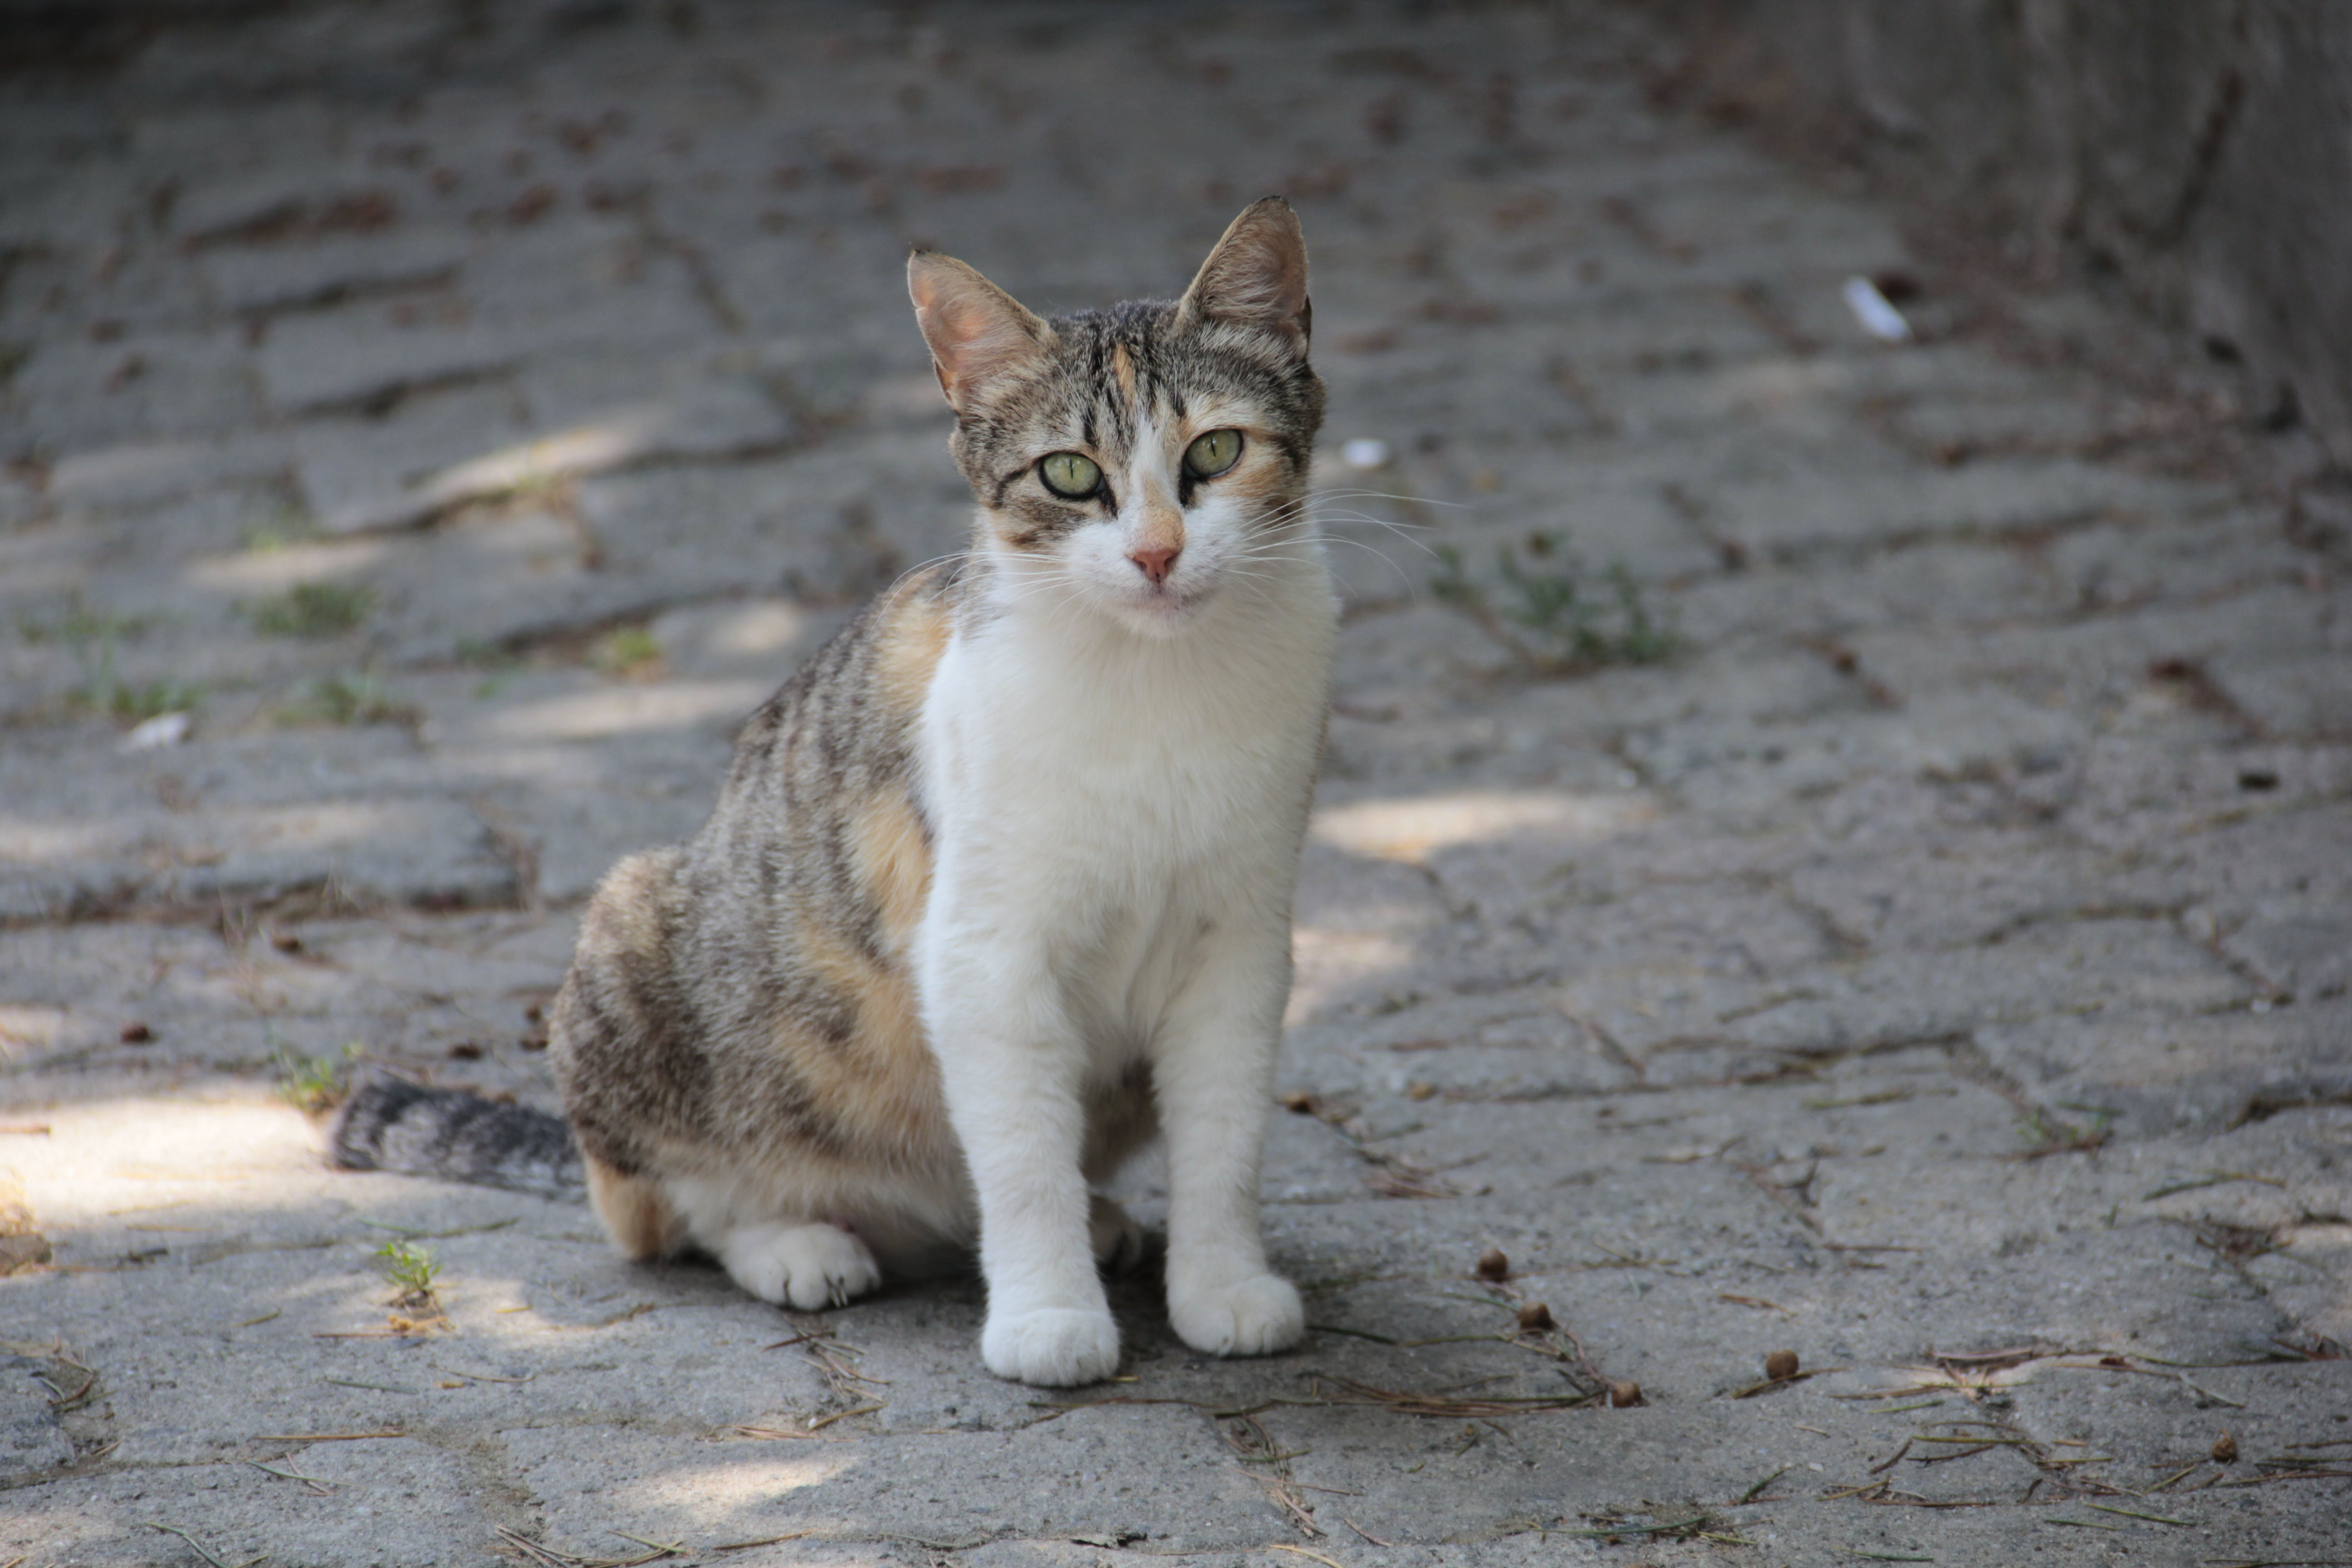 White and Brown Cat Sitting on Ground